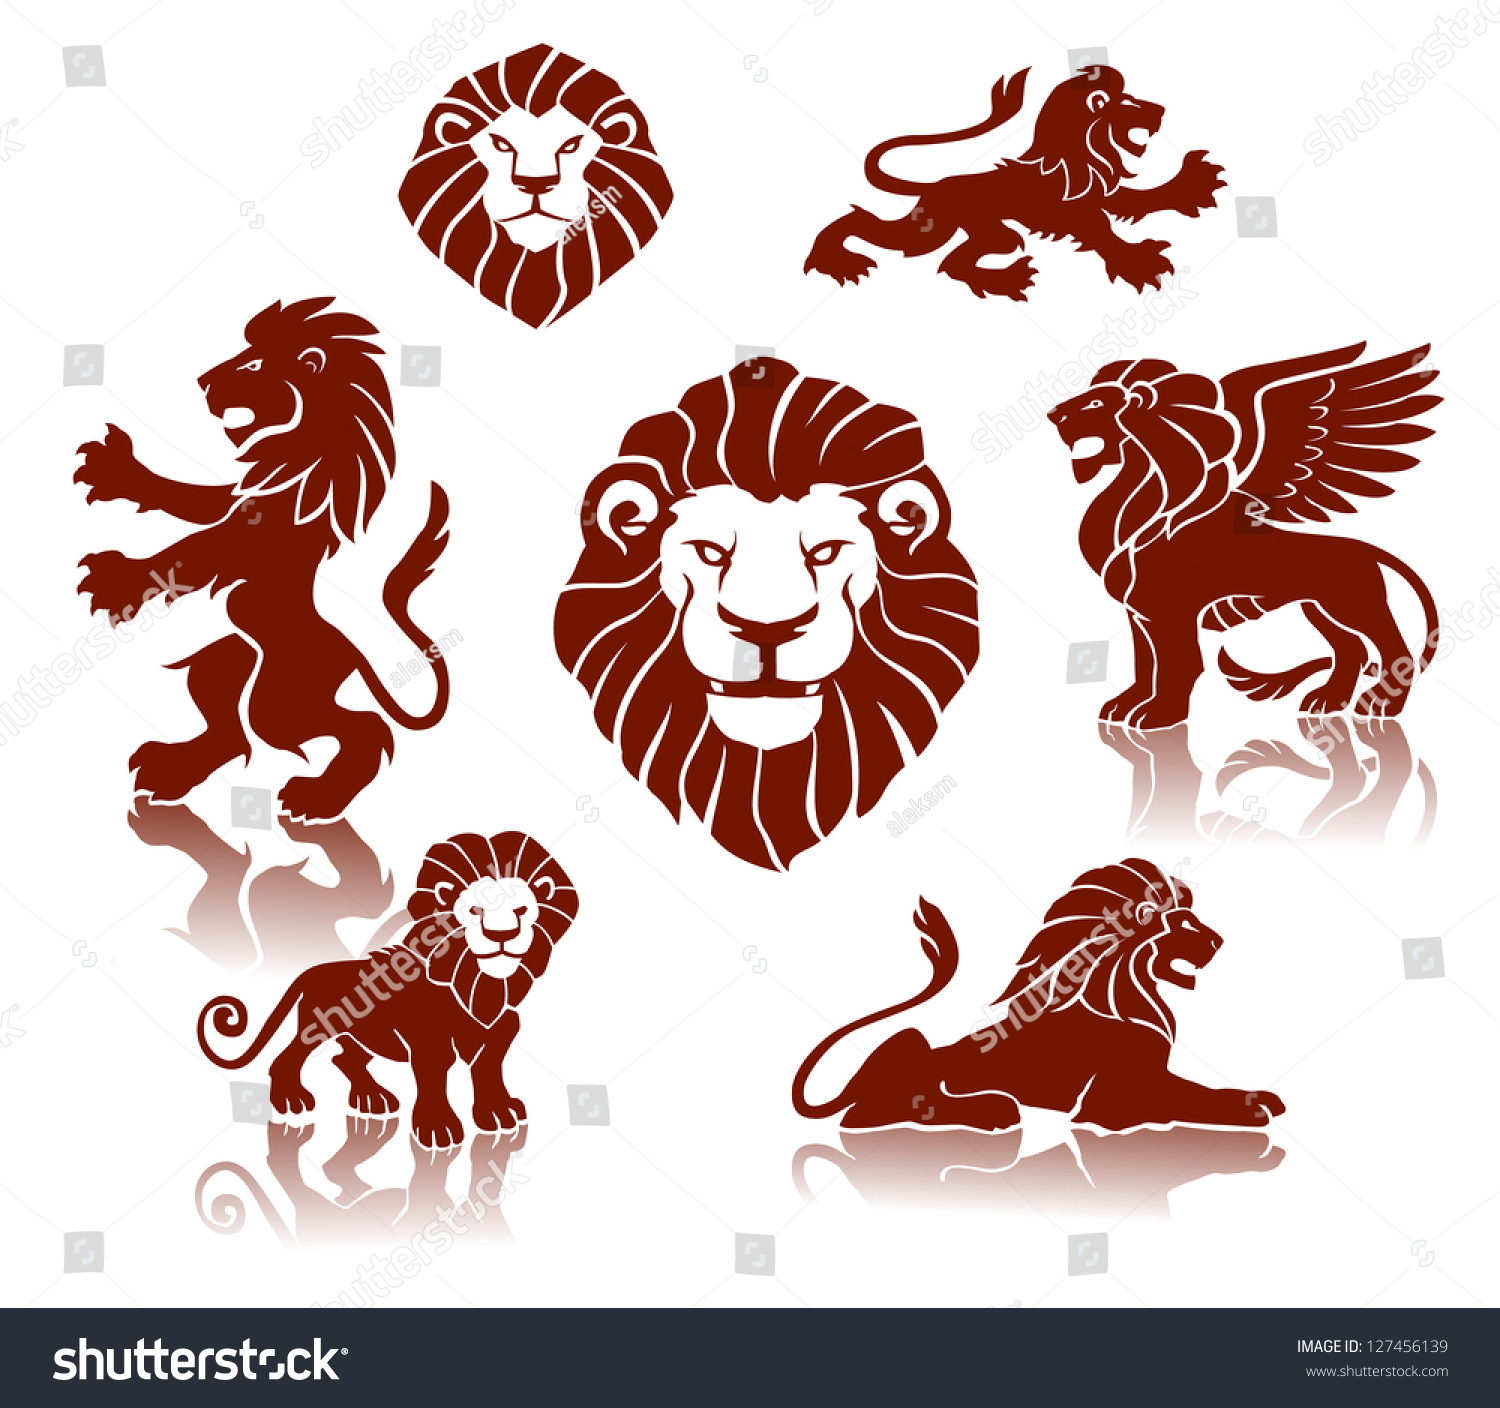 lions silhouettes set stock vector 127456139 shutterstock